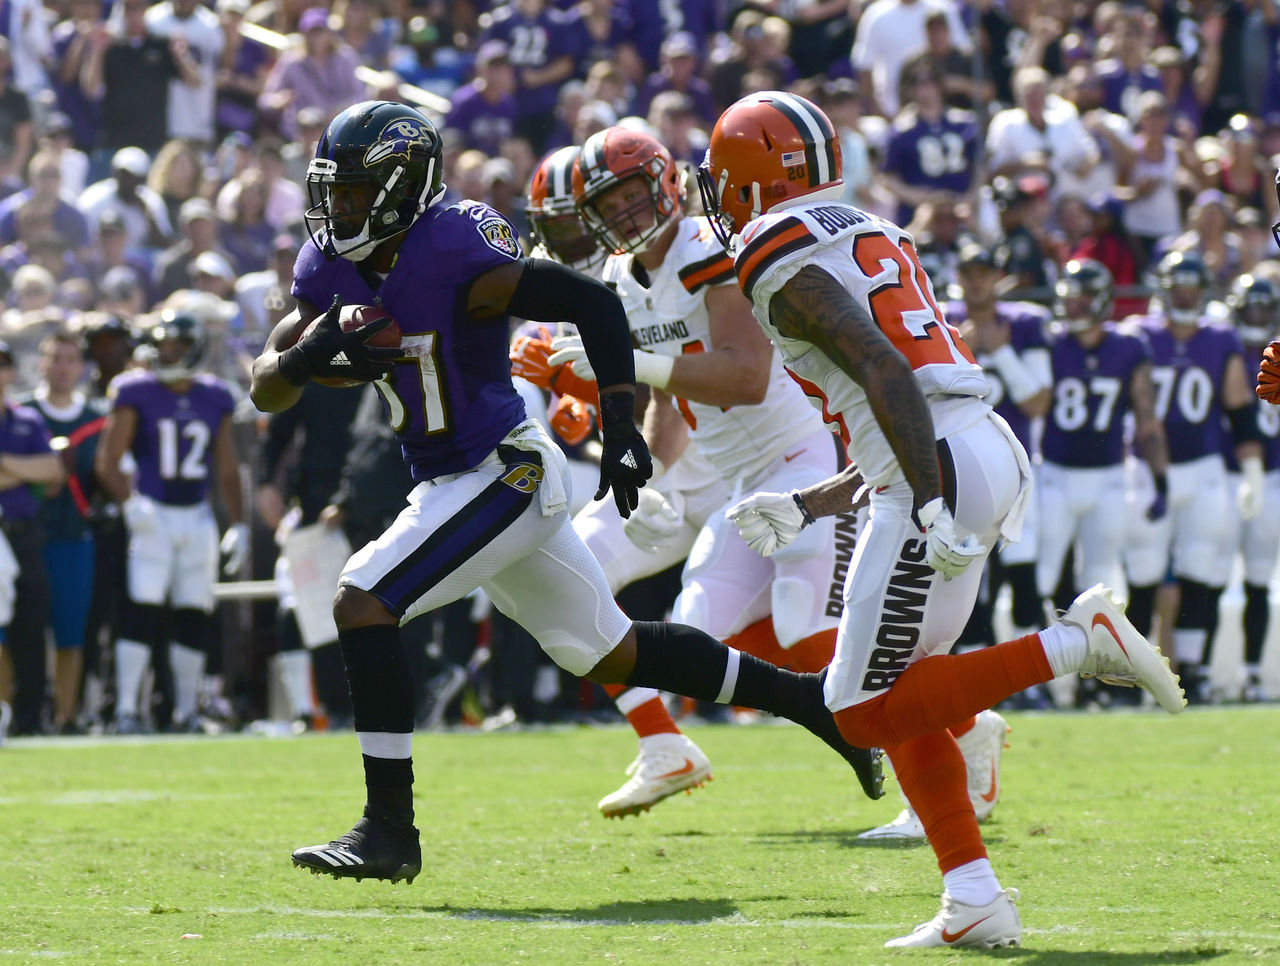 Cropped_2017-09-17t204859z_1635629284_nocid_rtrmadp_3_nfl-cleveland-browns-at-baltimore-ravens